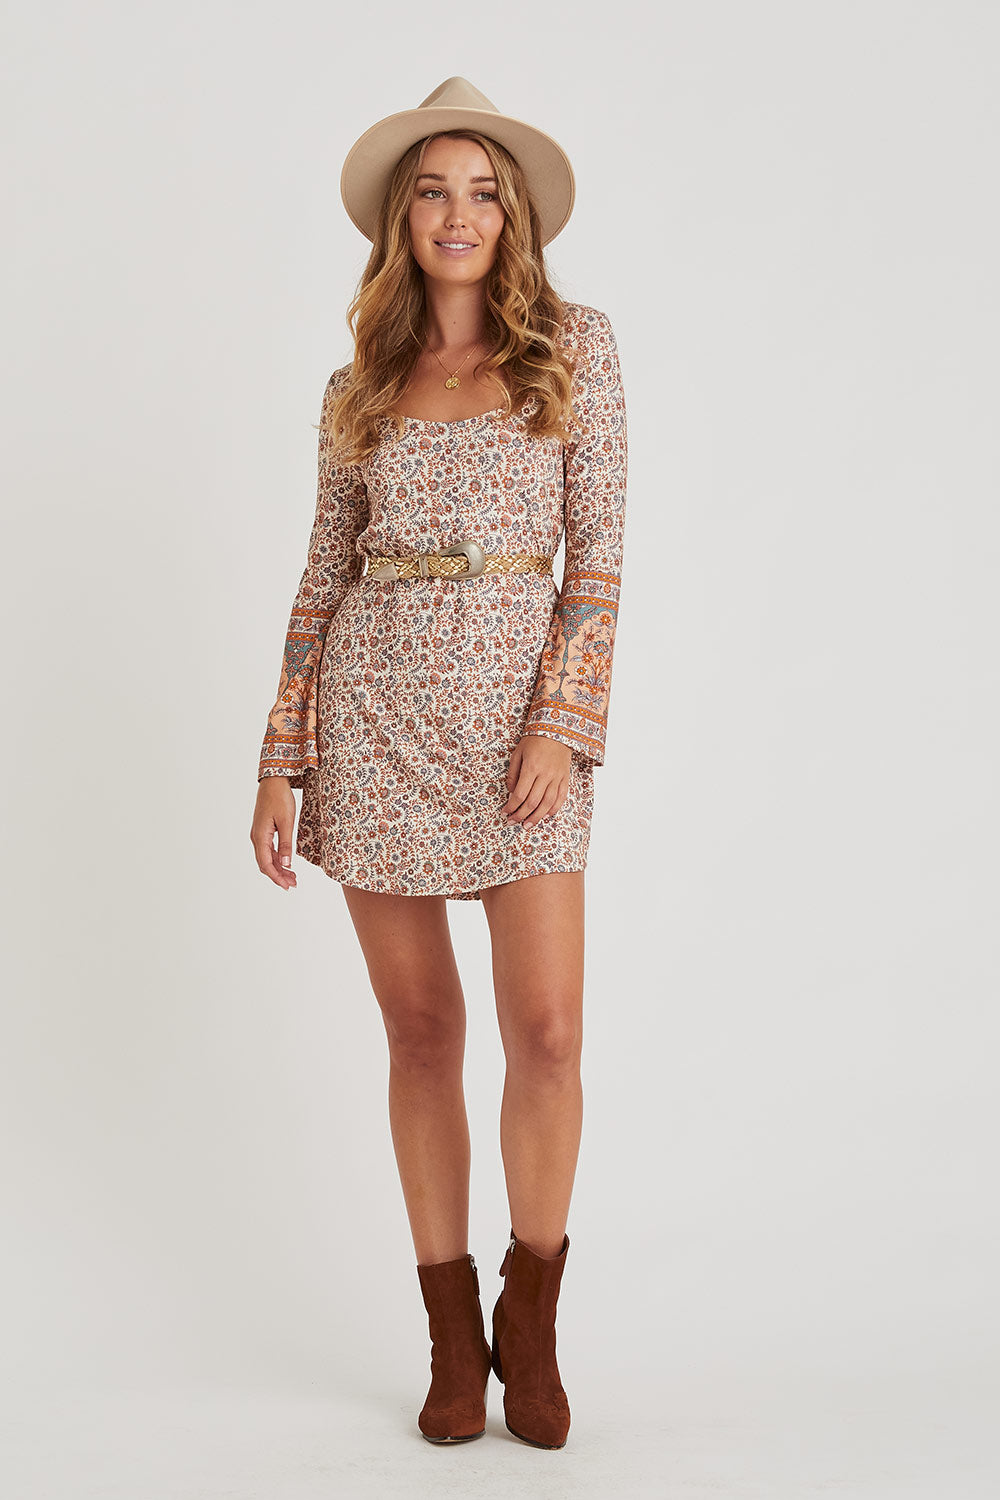 Fleetwood Jersey Dress in Harvest Gold